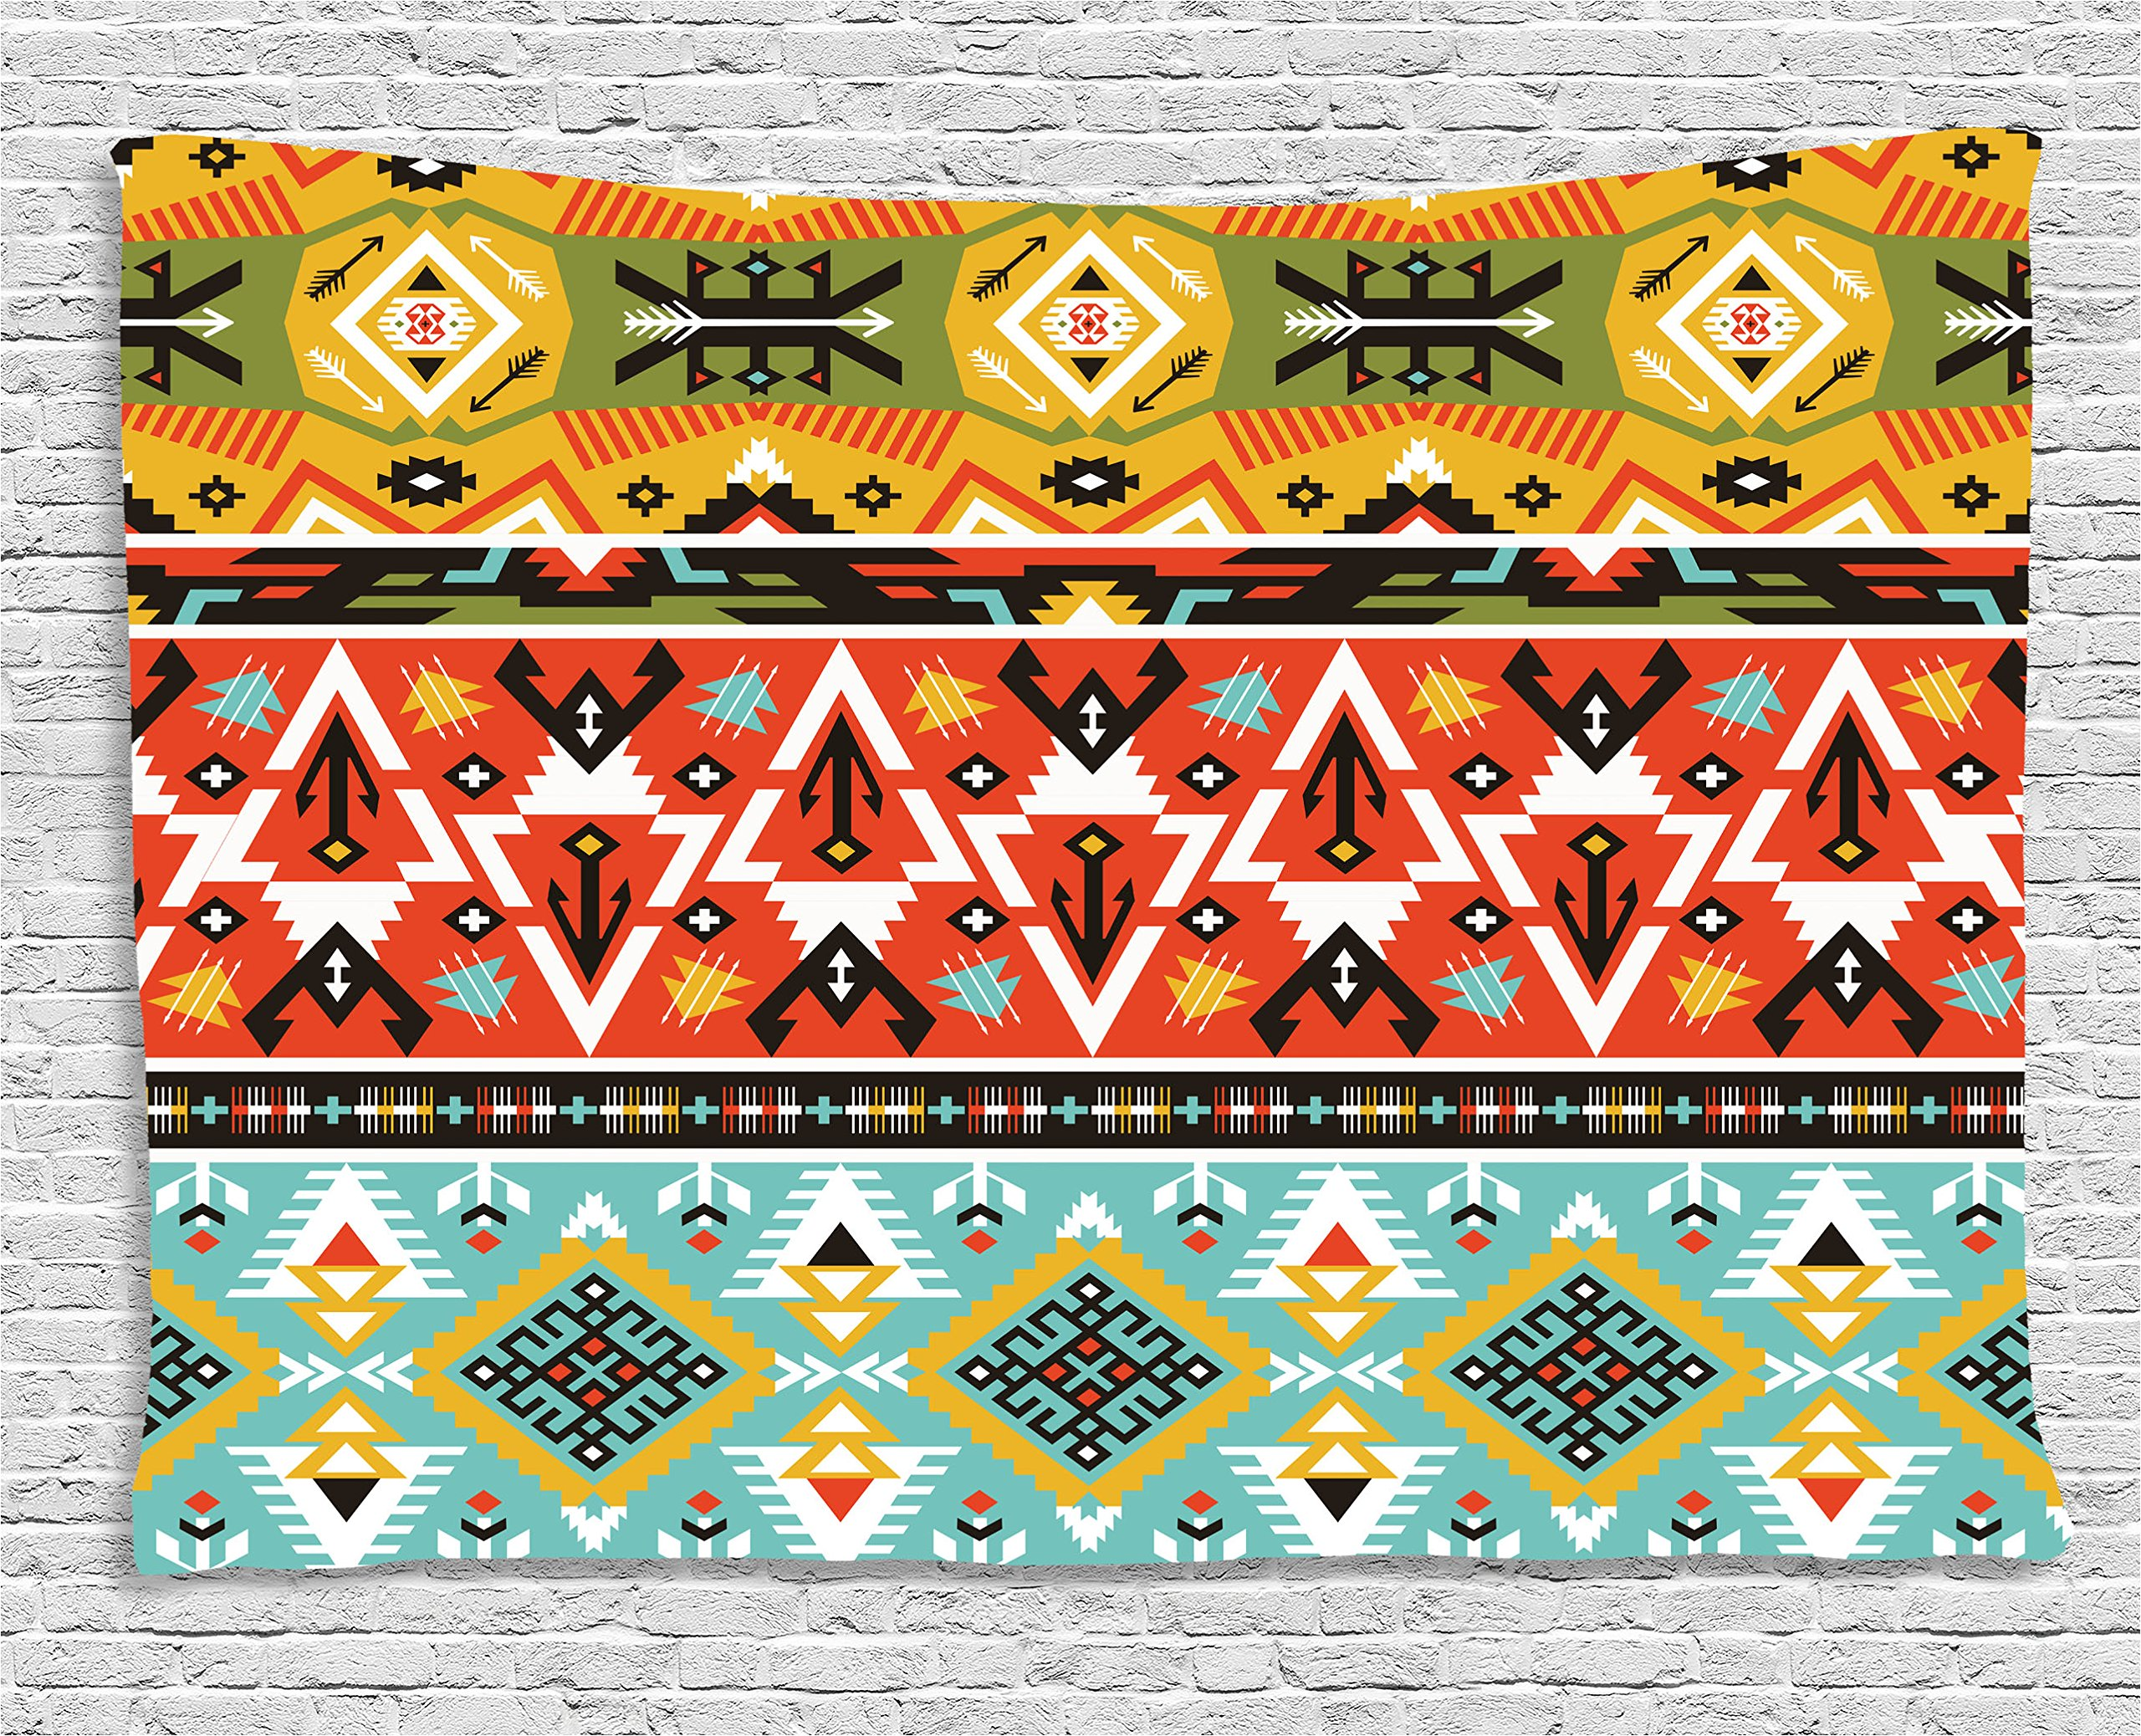 Ambesonne Tribal Tapestry, Love and Adventure Abstract Mountains Pattern with Aztec Ethnic Art Print, Wall Hanging for Bedroom Living Room Dorm, 80 W X 60 L inches, Scarlet Mustard Blue